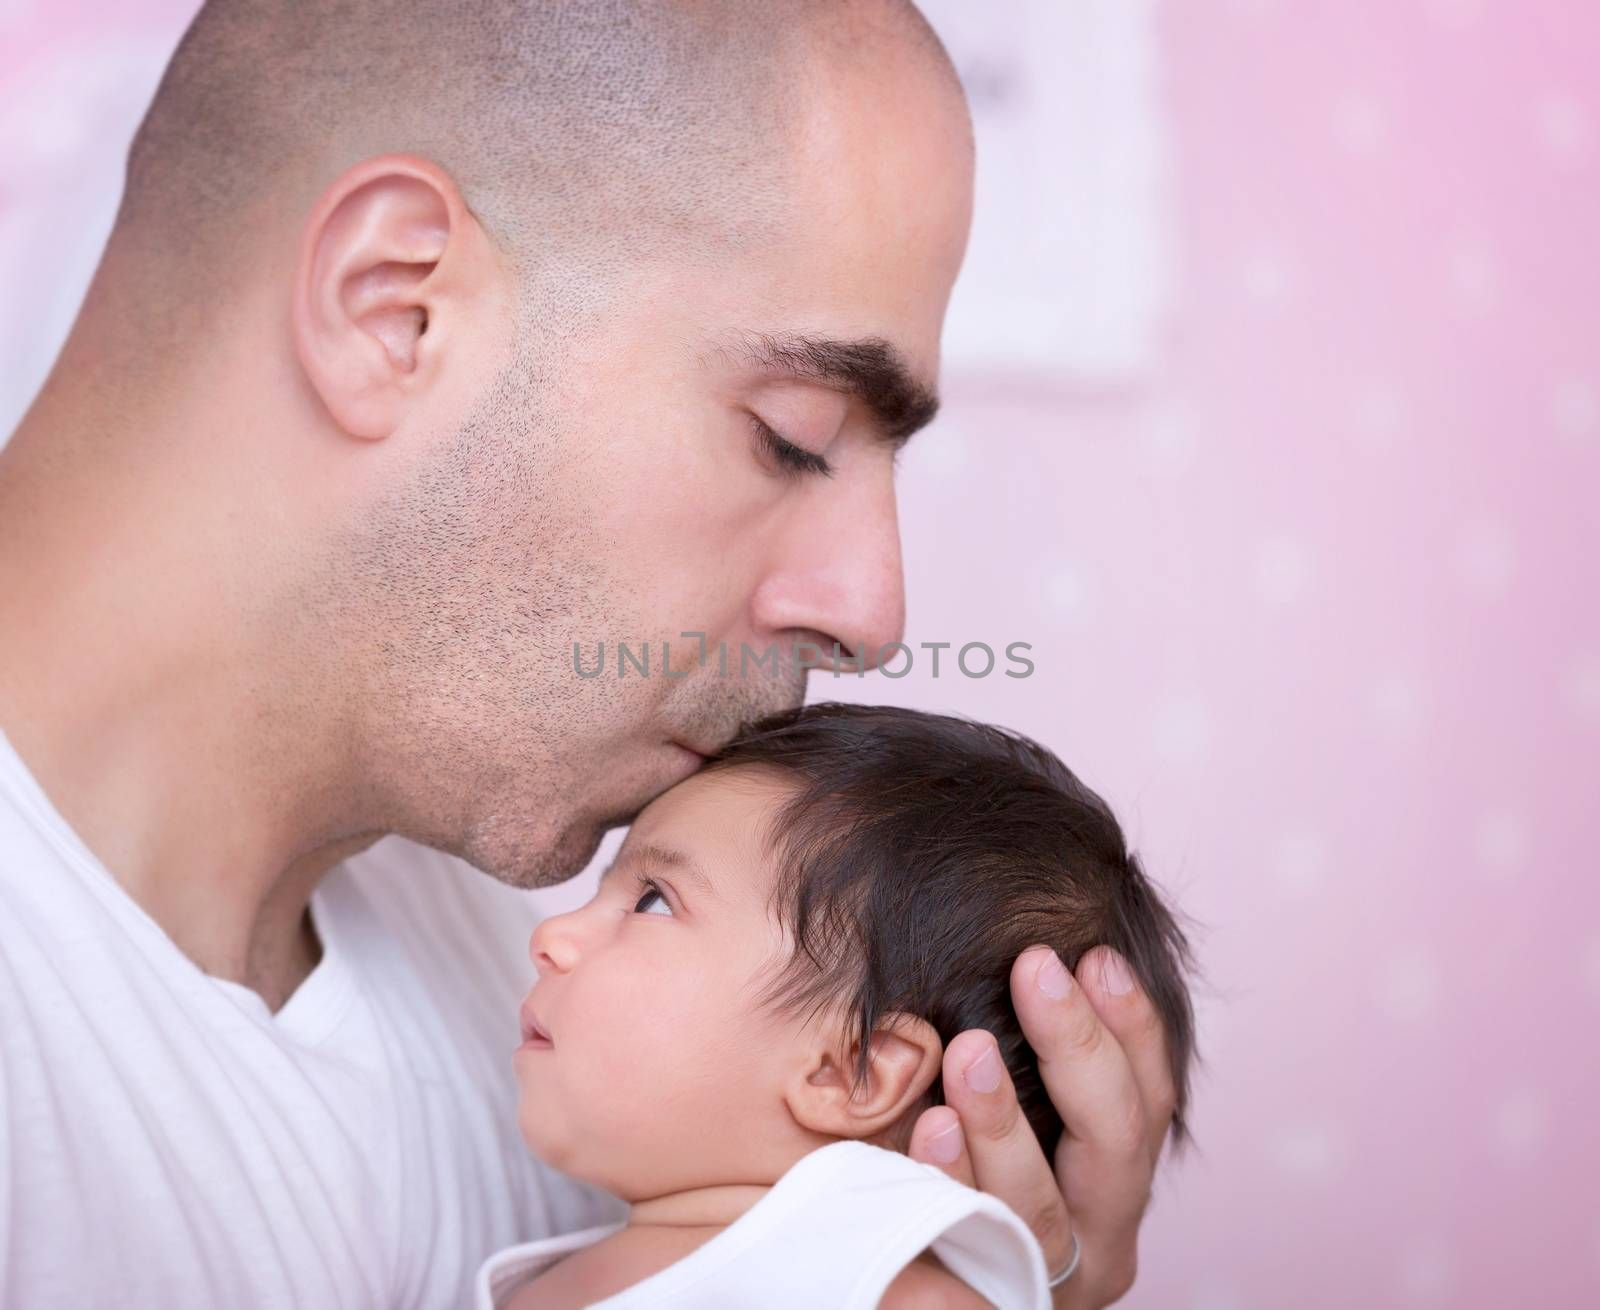 Closeup portrait of a daddy and his baby girl at home, with gentleness kissing his cute newborn daughter, enjoying parenthood, family happiness and father's love concept